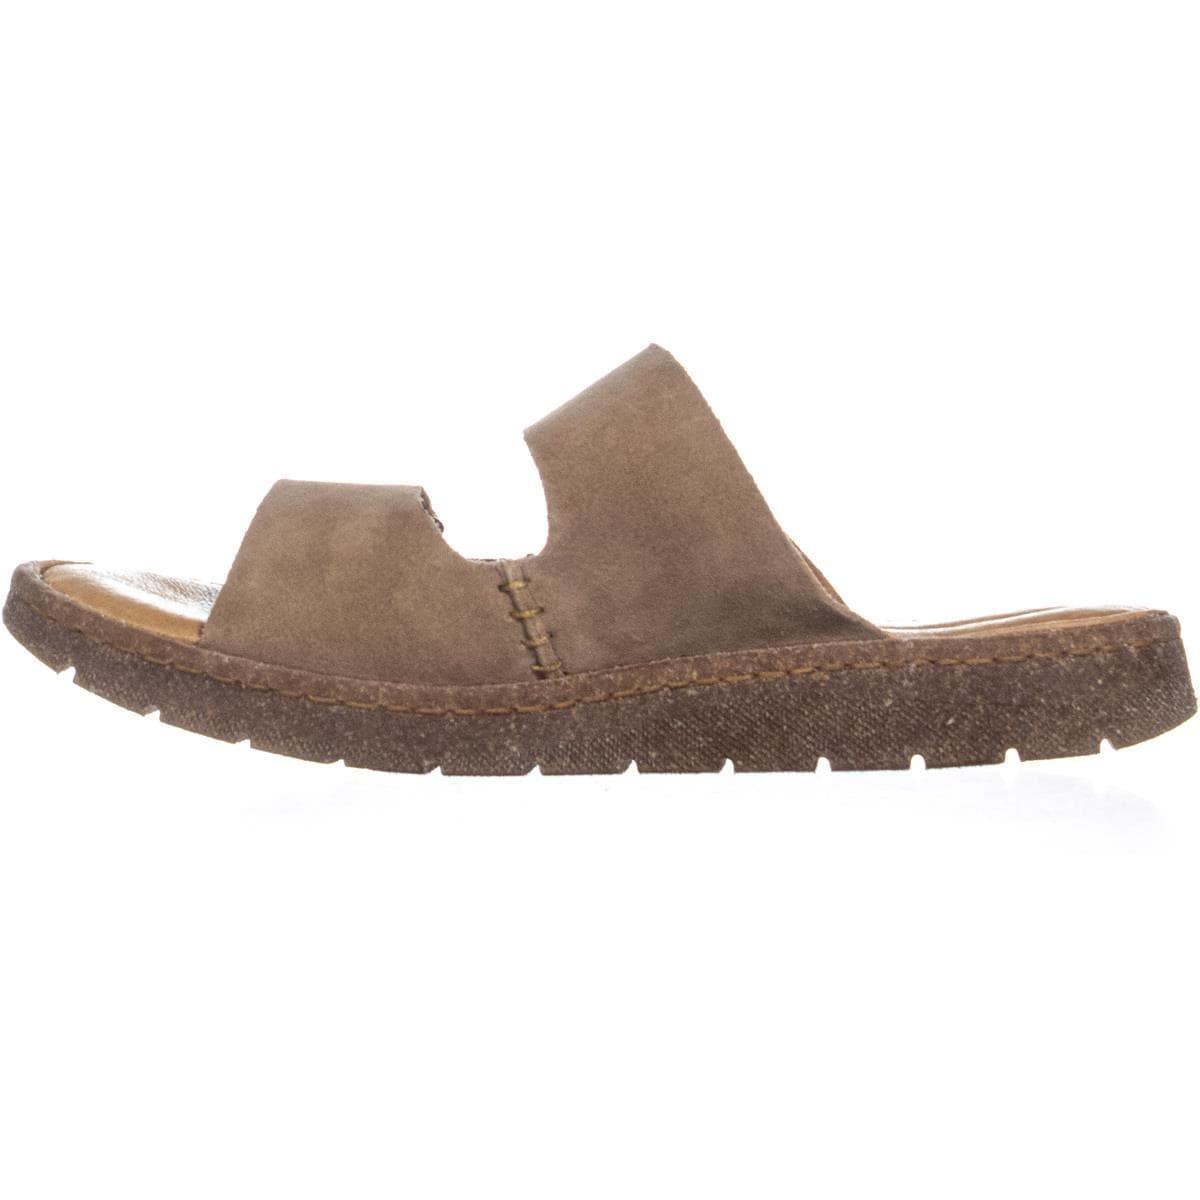 669b6c25dabb7 Shop Born Dominica Slide Flat Velcro Sandals, Taupe - 10 US / 42 EU - Free  Shipping Today - Overstock - 24303580